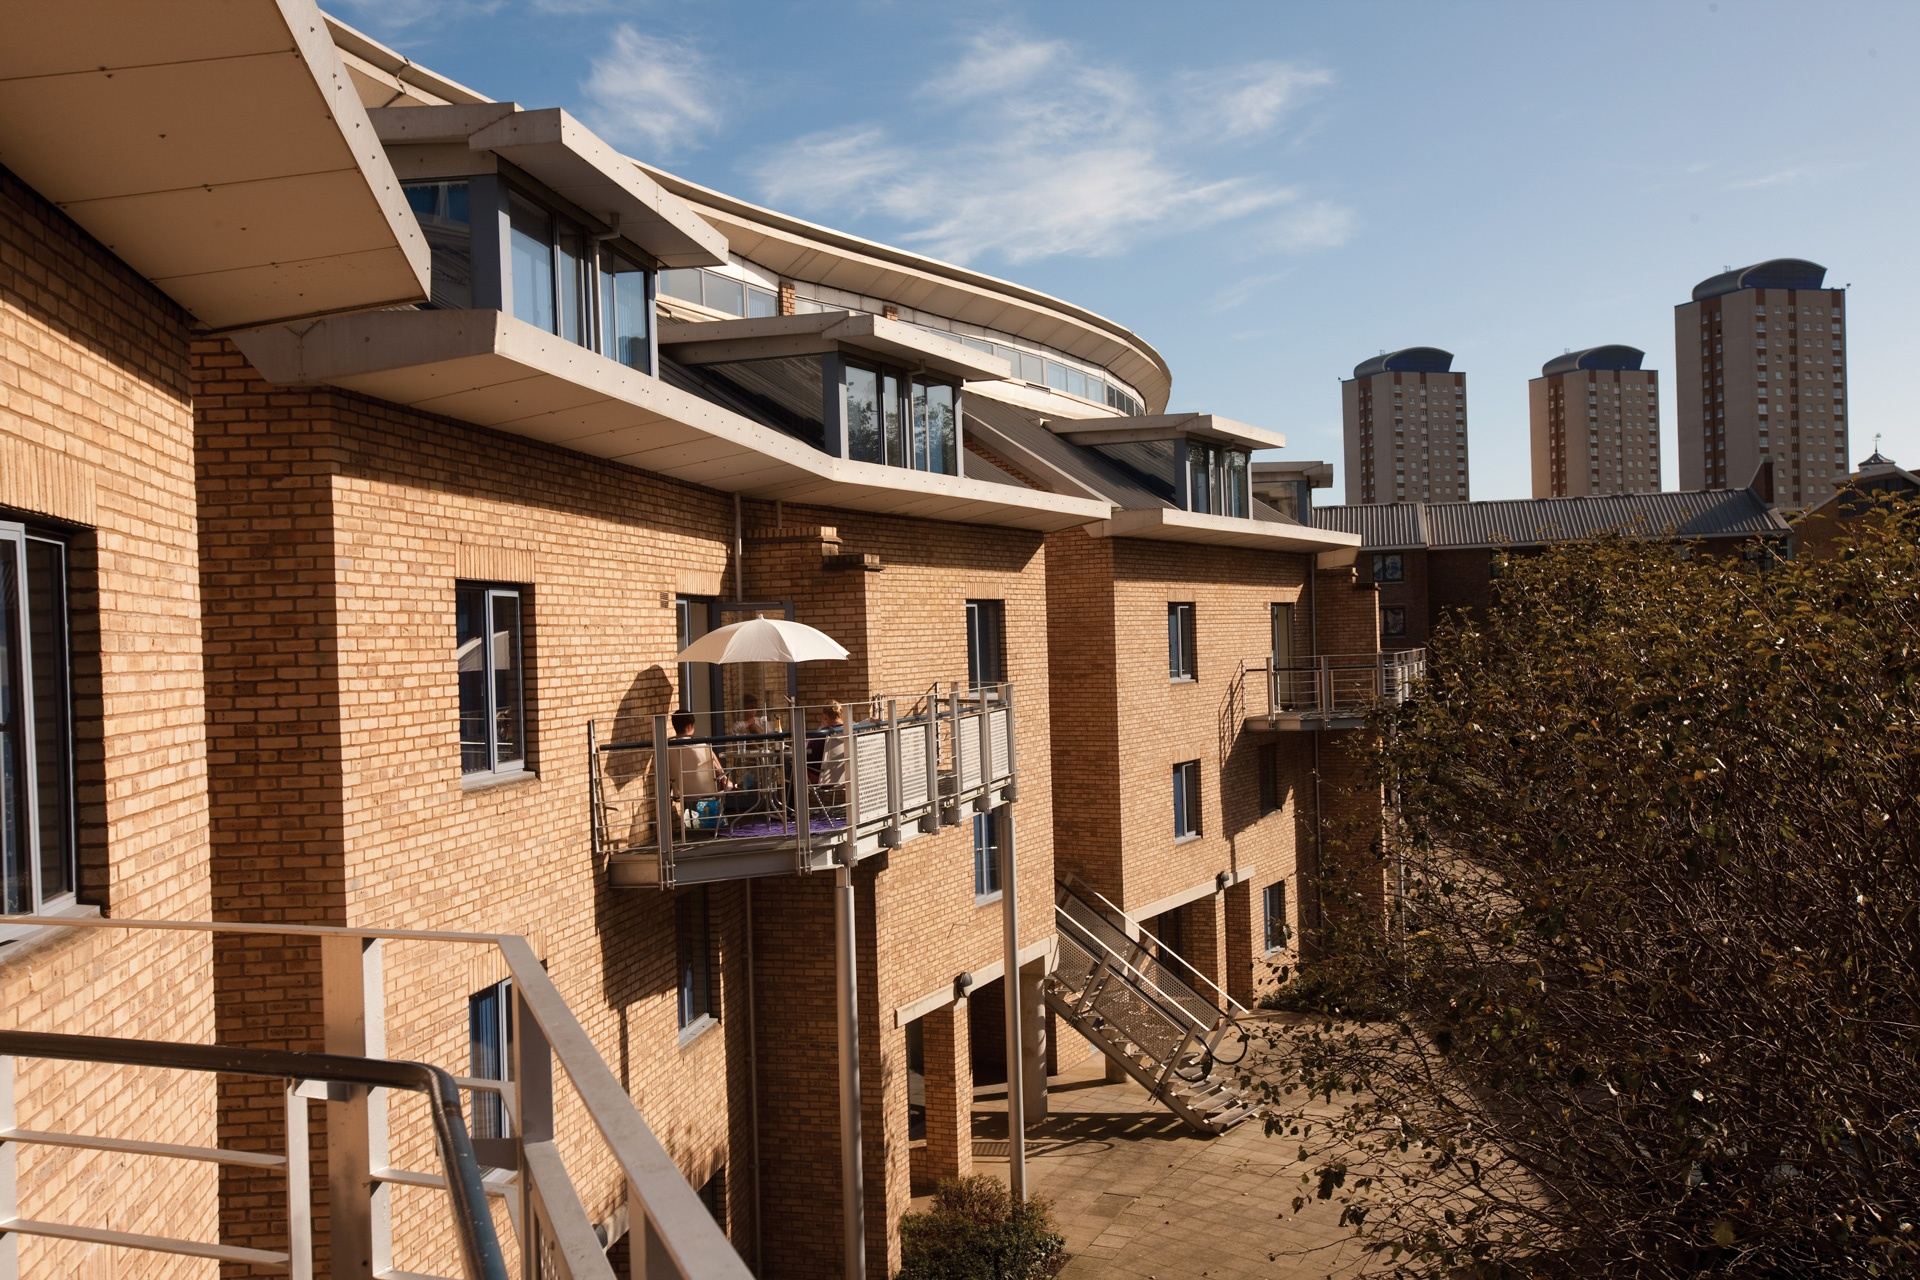 UoS Halls of residents